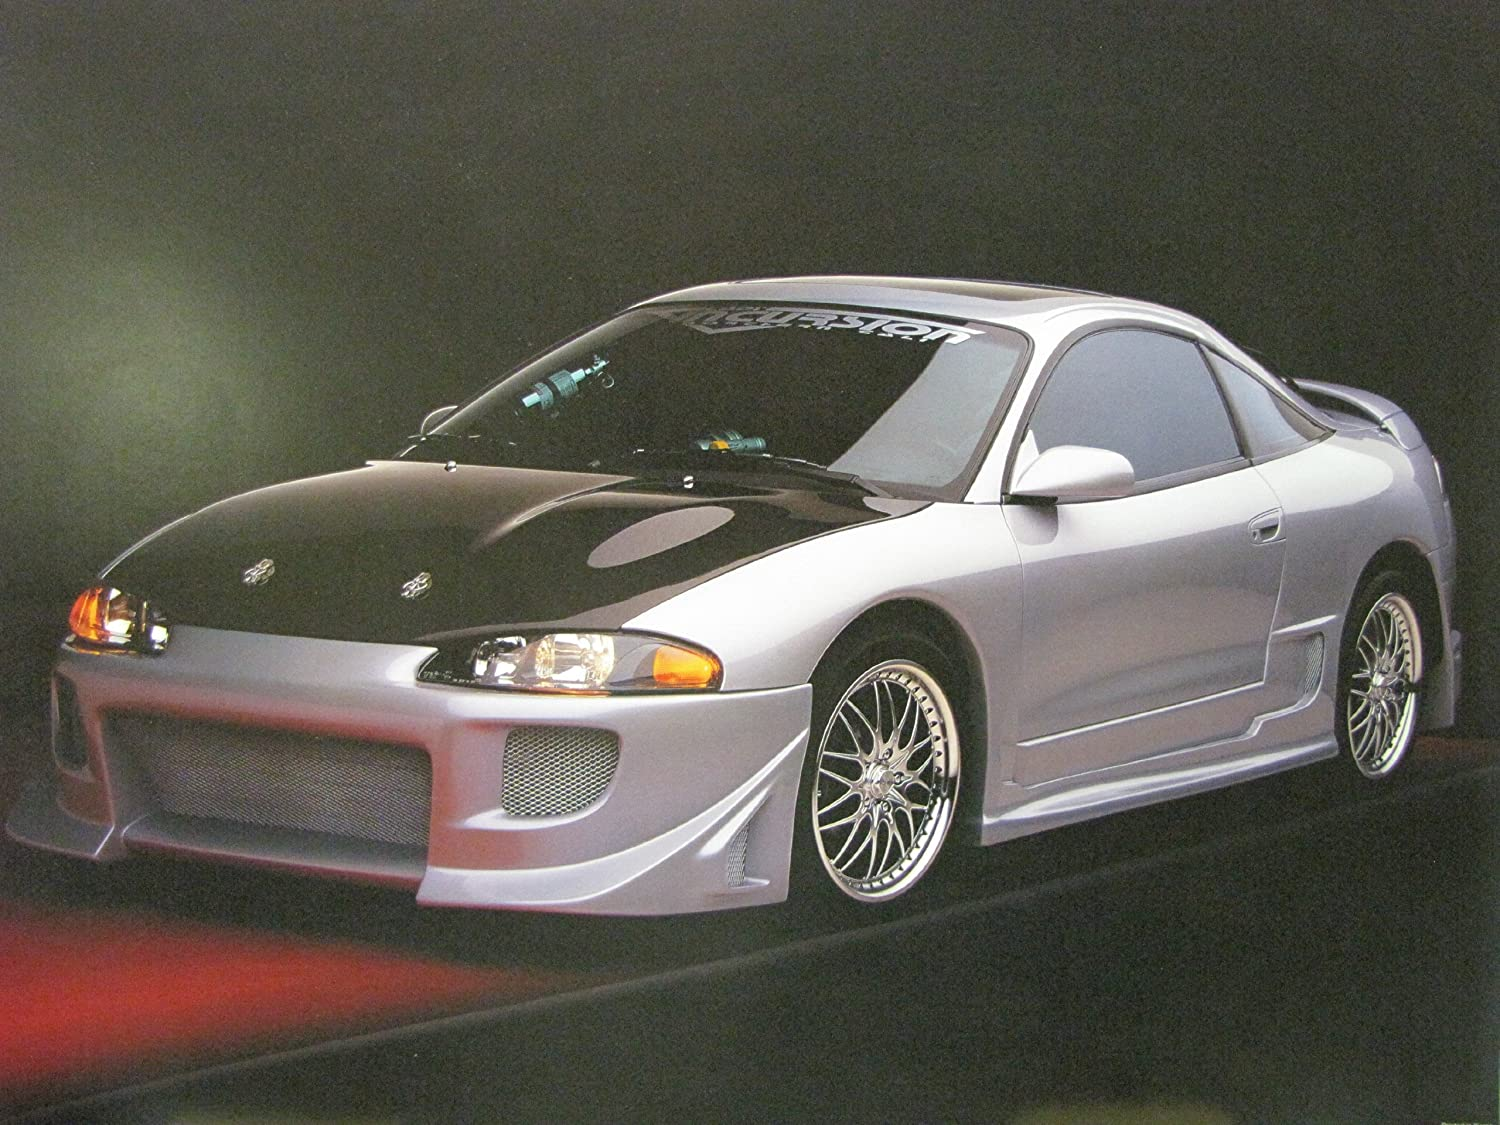 Amazon.com: Mitsubishi Eclipse Custom Street Racer Sports Car Wall ...